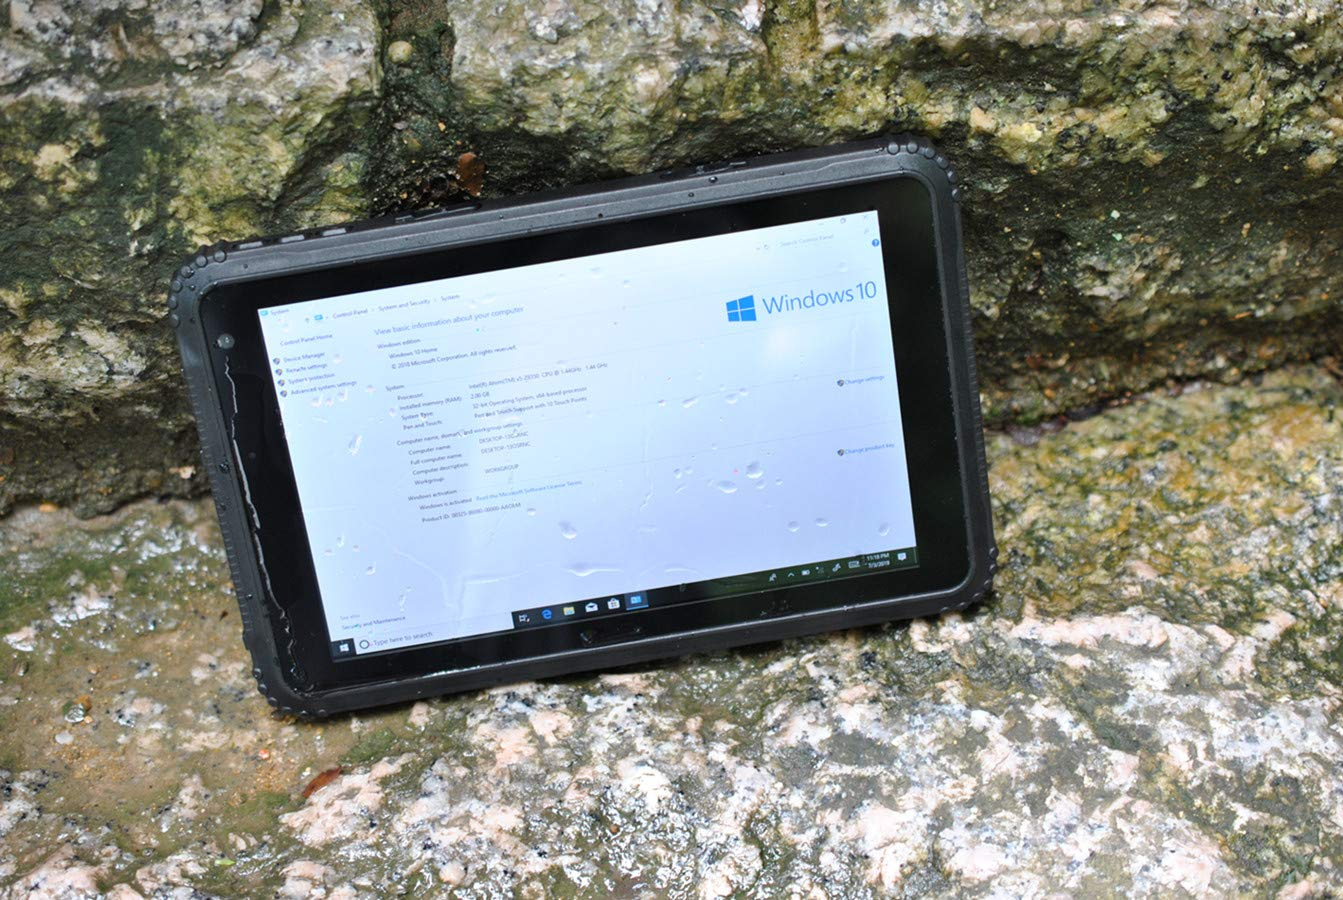 Vanquisher 8-Inch Ultra Rugged Tablet Windows 10 Pro, with GPS GNSS /  7800mAH Battery/Gorilla Glass Panel / IP67 Rated for Enterprise Mobile  Field